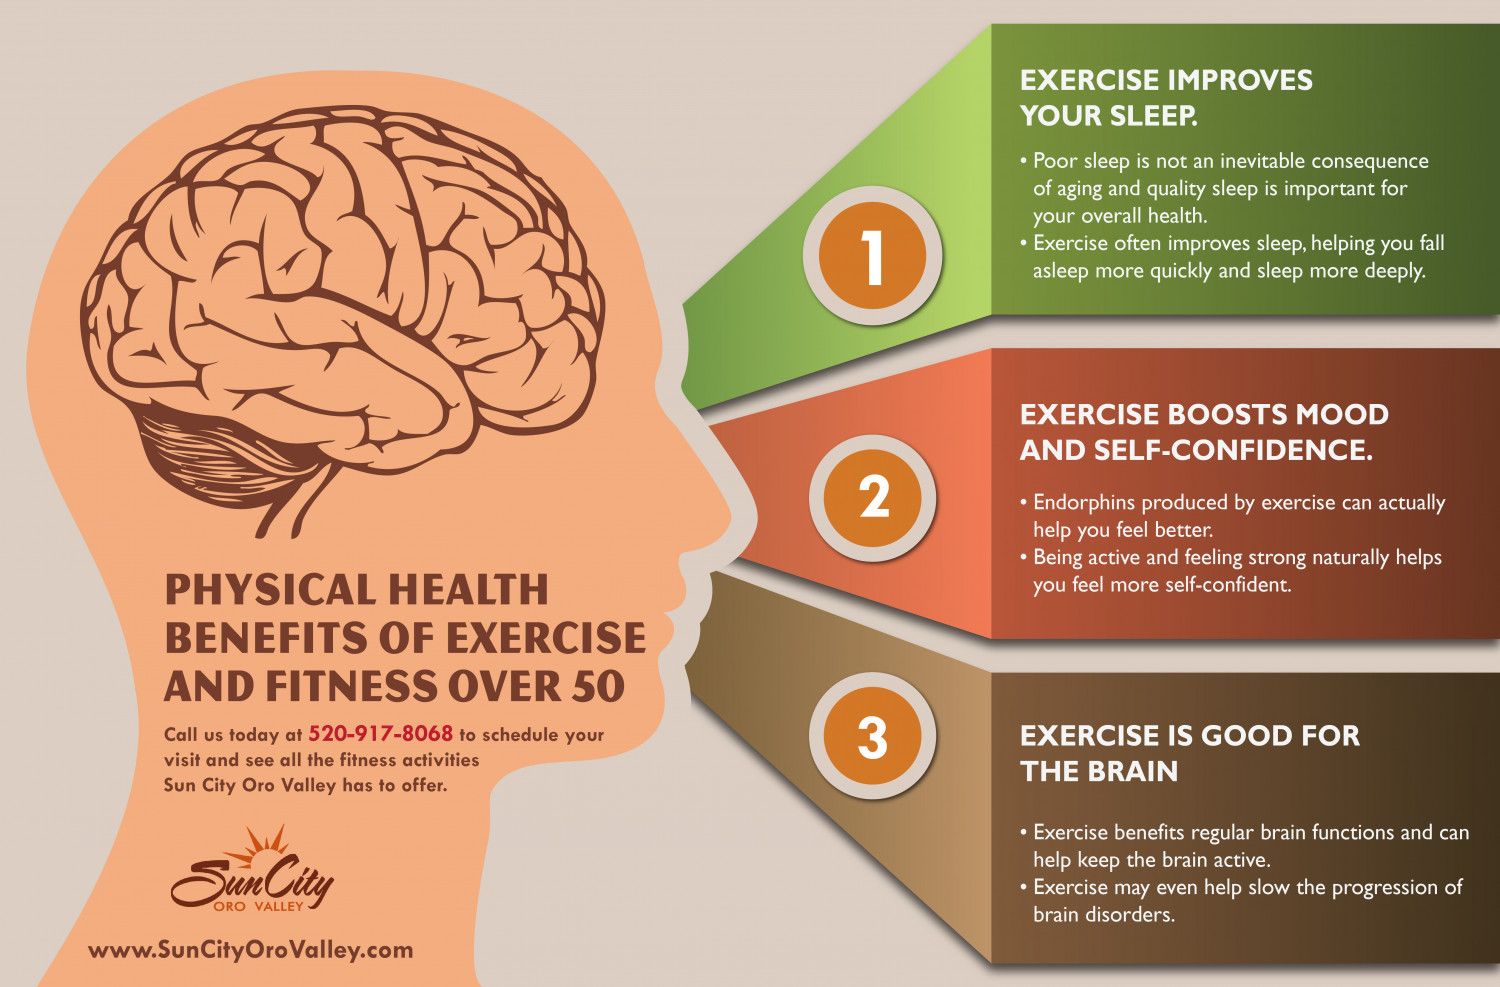 Mental Health Benefits Of Exercise And Fitness Over 50